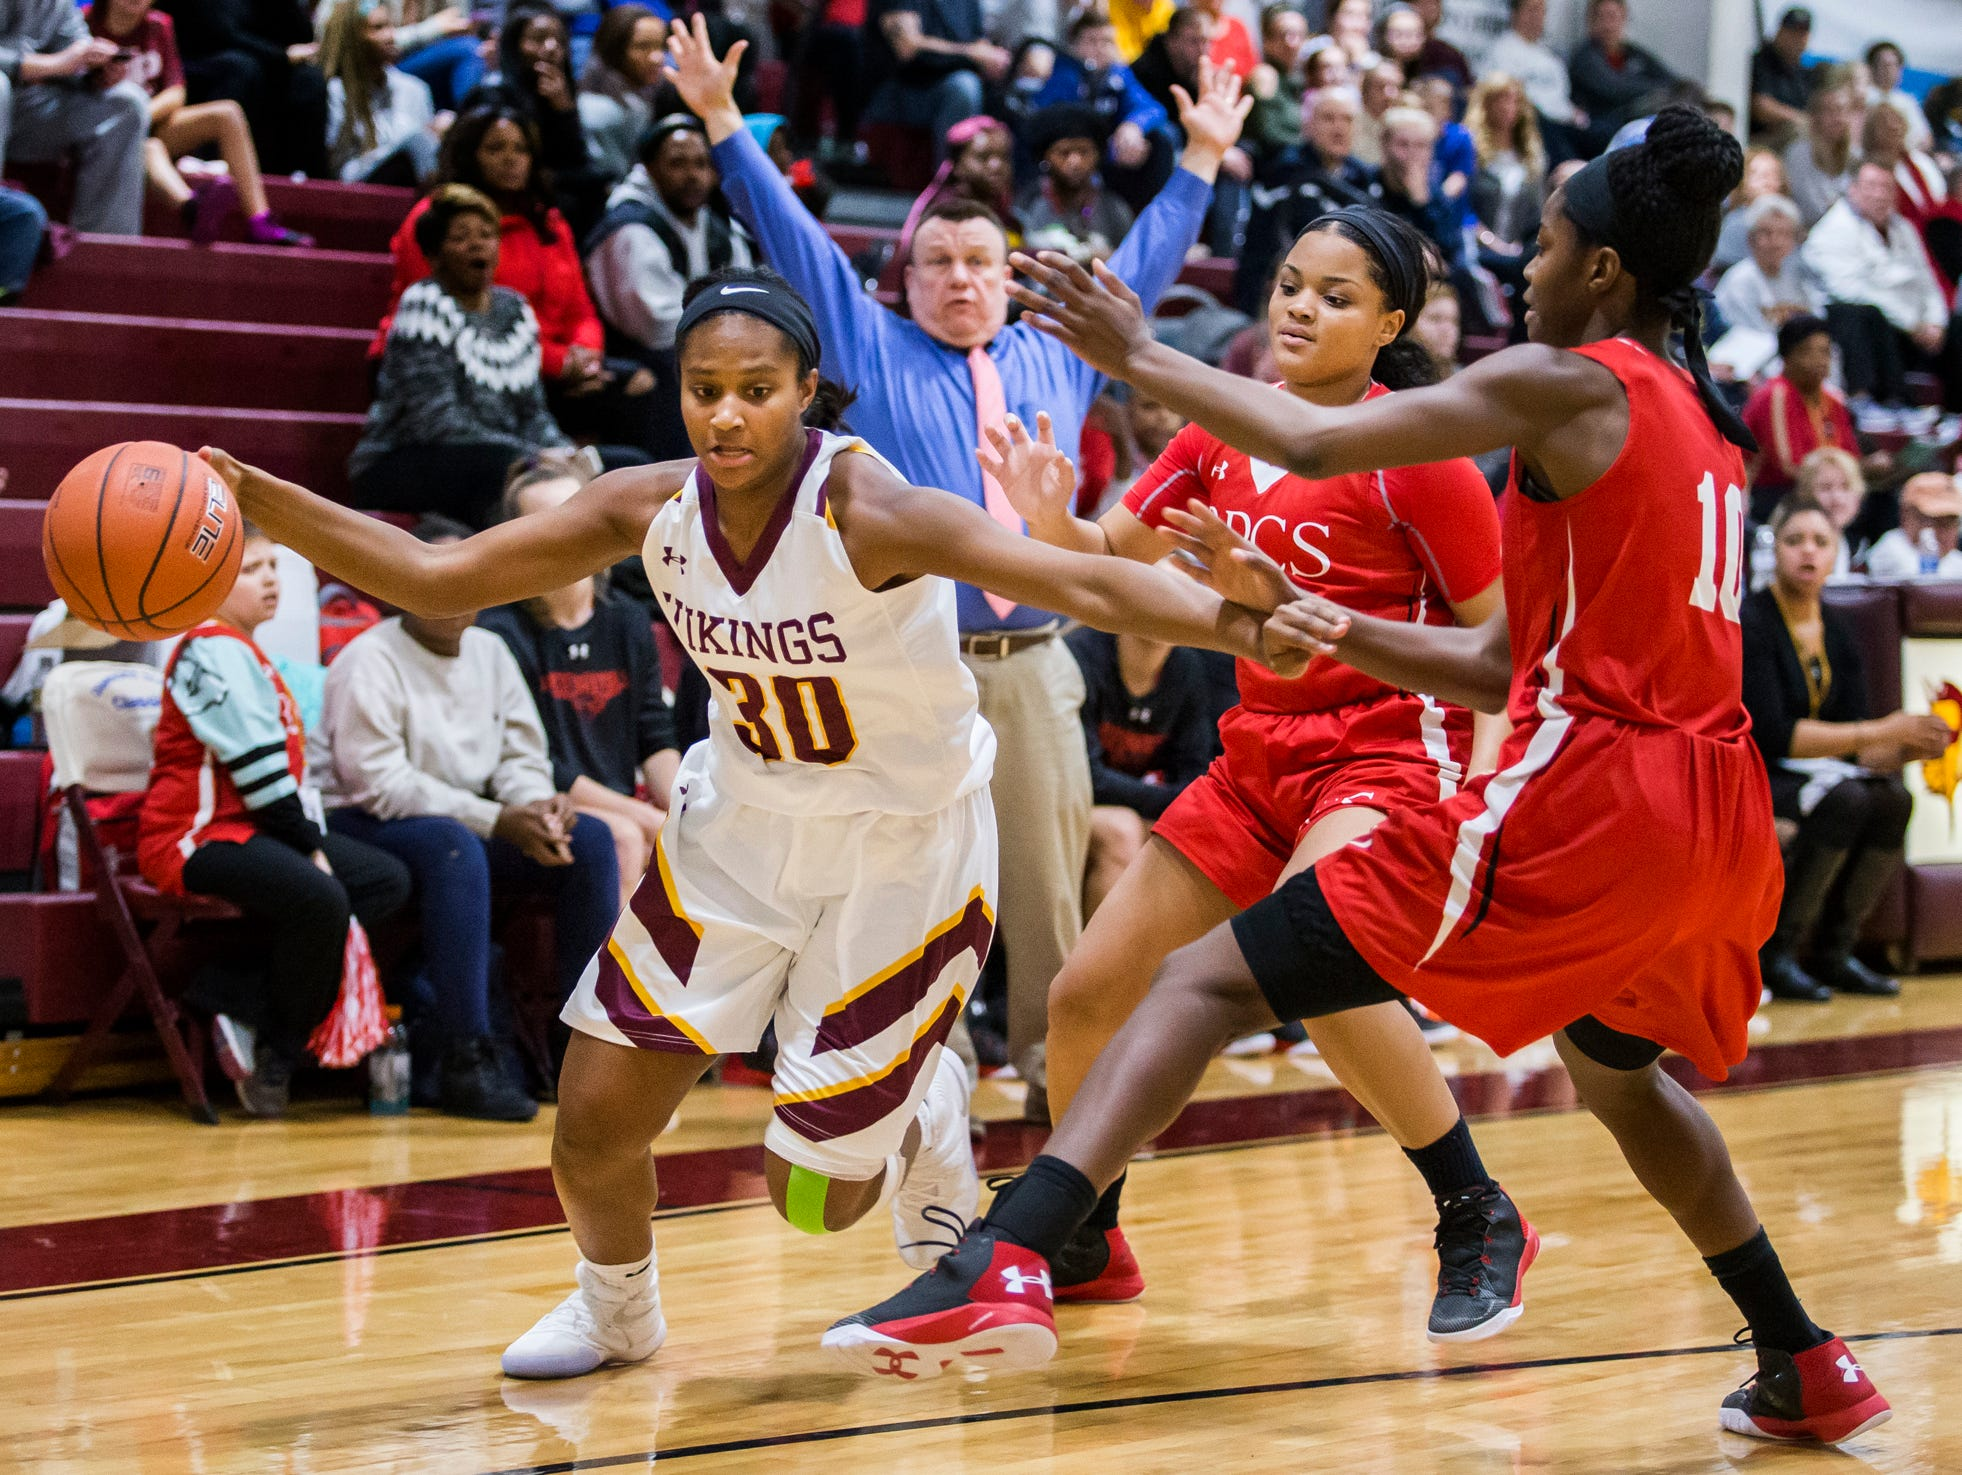 St. Elizabeth's Alanna Speaks (No. 30) drives to the basket against a pair of Roland Park defenders in the first half of St. Elizabeth's 58-44 loss to Roland Park Country School in the Diamond State Classic at St. Elizabeth High School in Wilmington on Tuesday night.